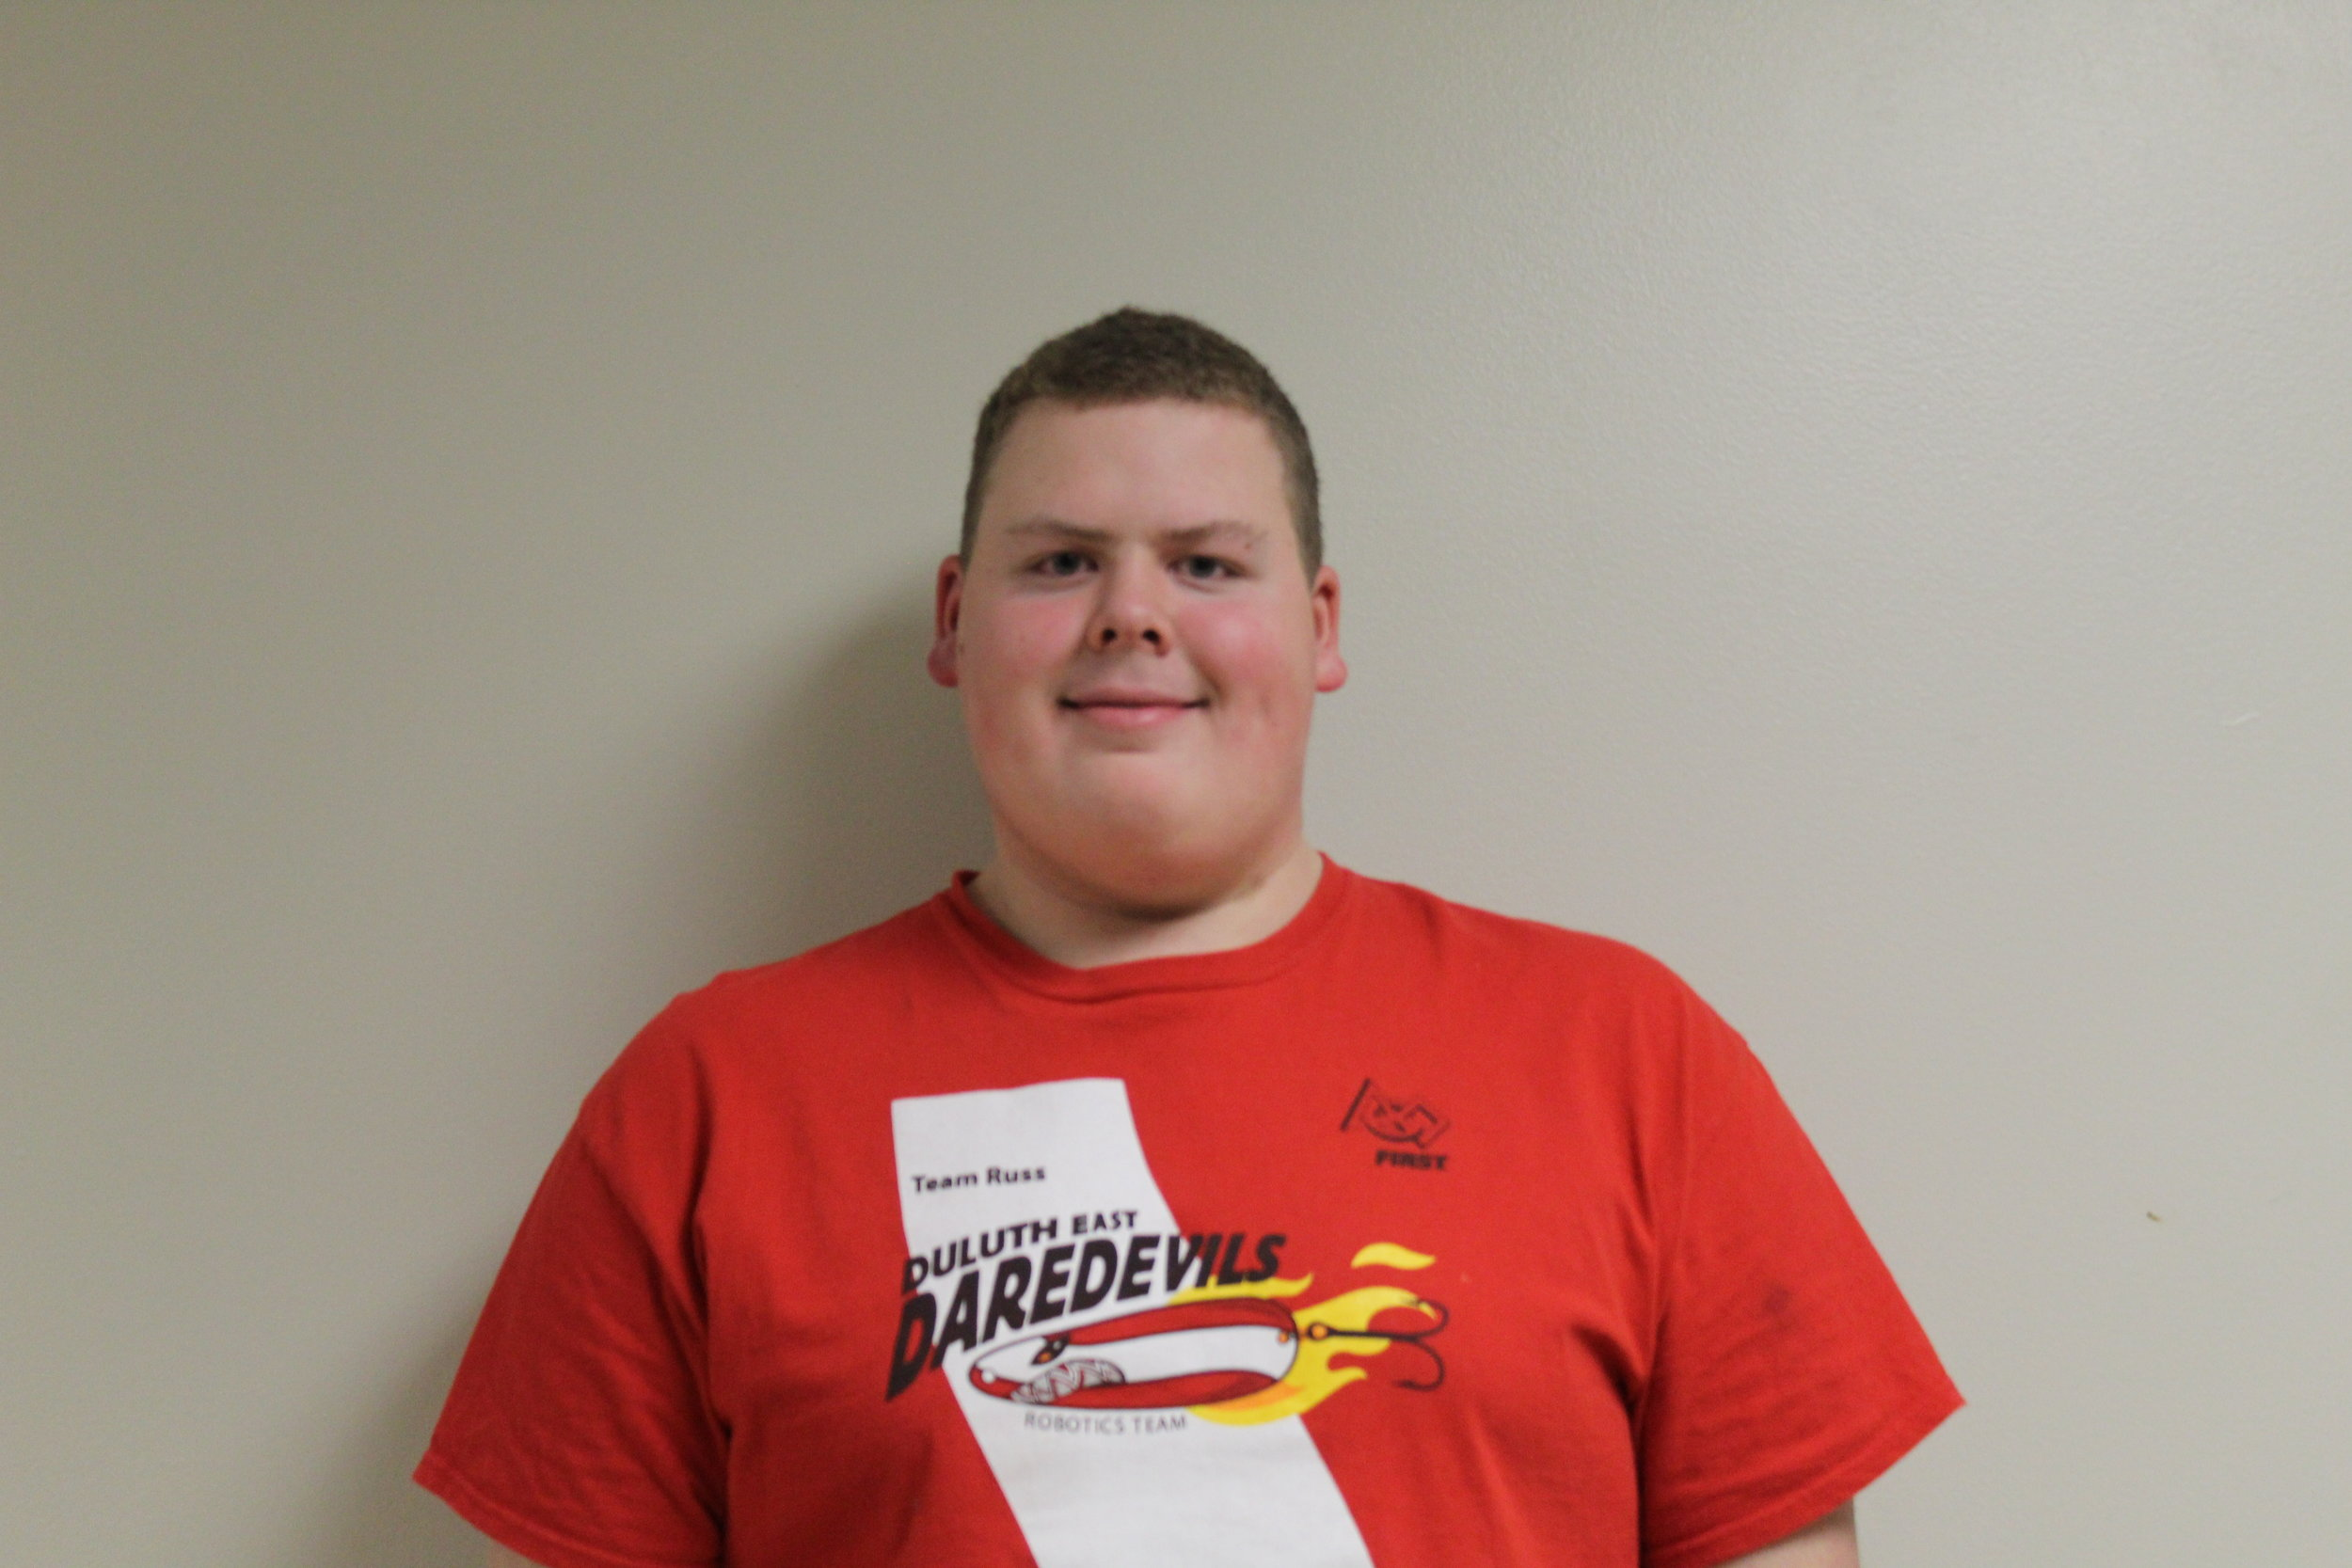 Jacob R. - Jacob Reed is a sophomore at Duluth East, and this is his second year on the team. He was introduced to CAD in the 8th grade. Jacob joined the team because he was interested in robotics and wanted to further his CAD experience. During his free time he enjoys fishing, messing with Lego, and gaming when he can.